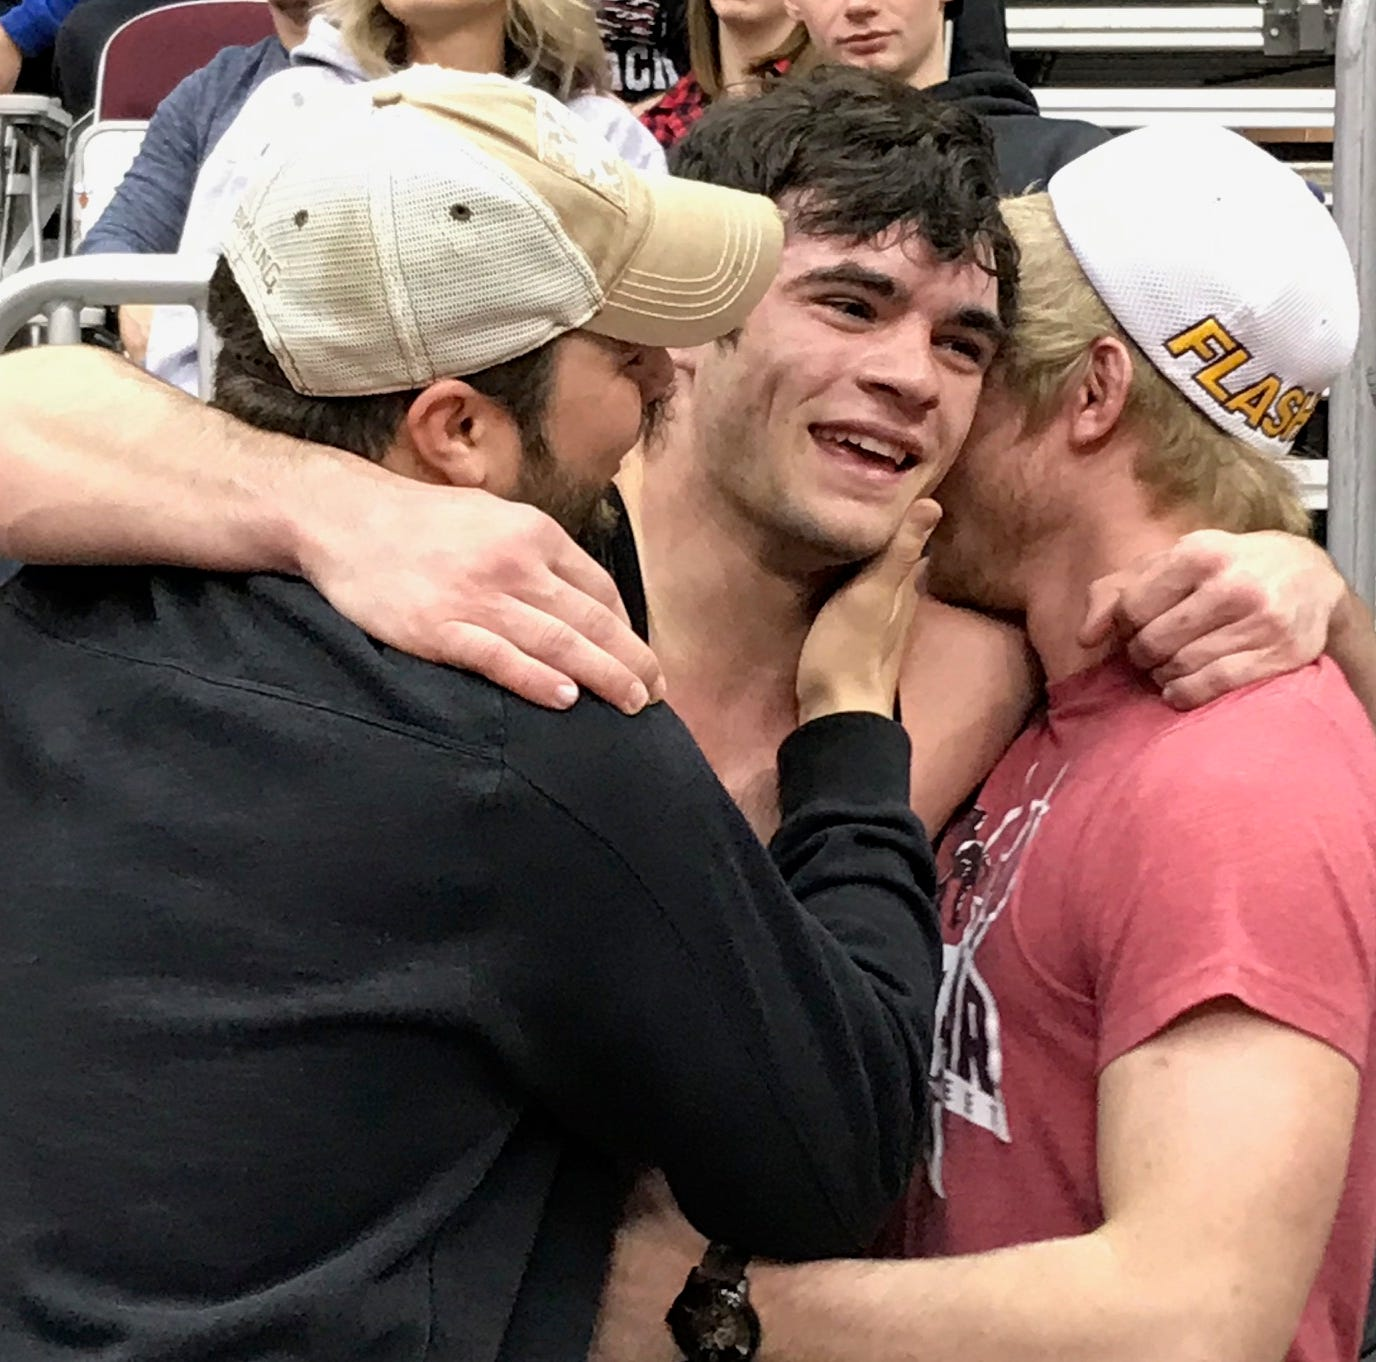 State champs: Bever, Becker cap storybook season on mats